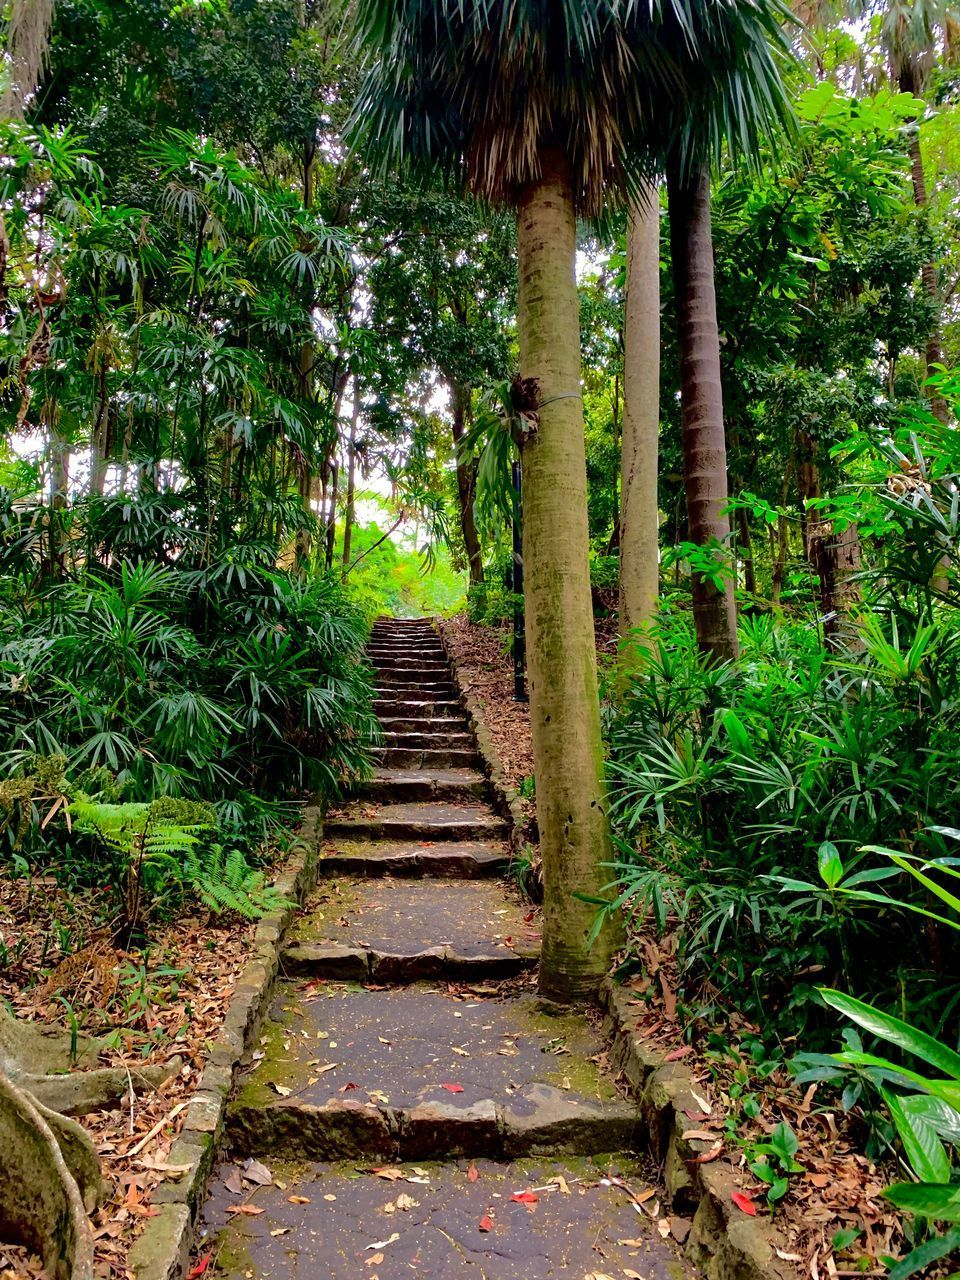 STEPS LEADING TOWARDS FOREST